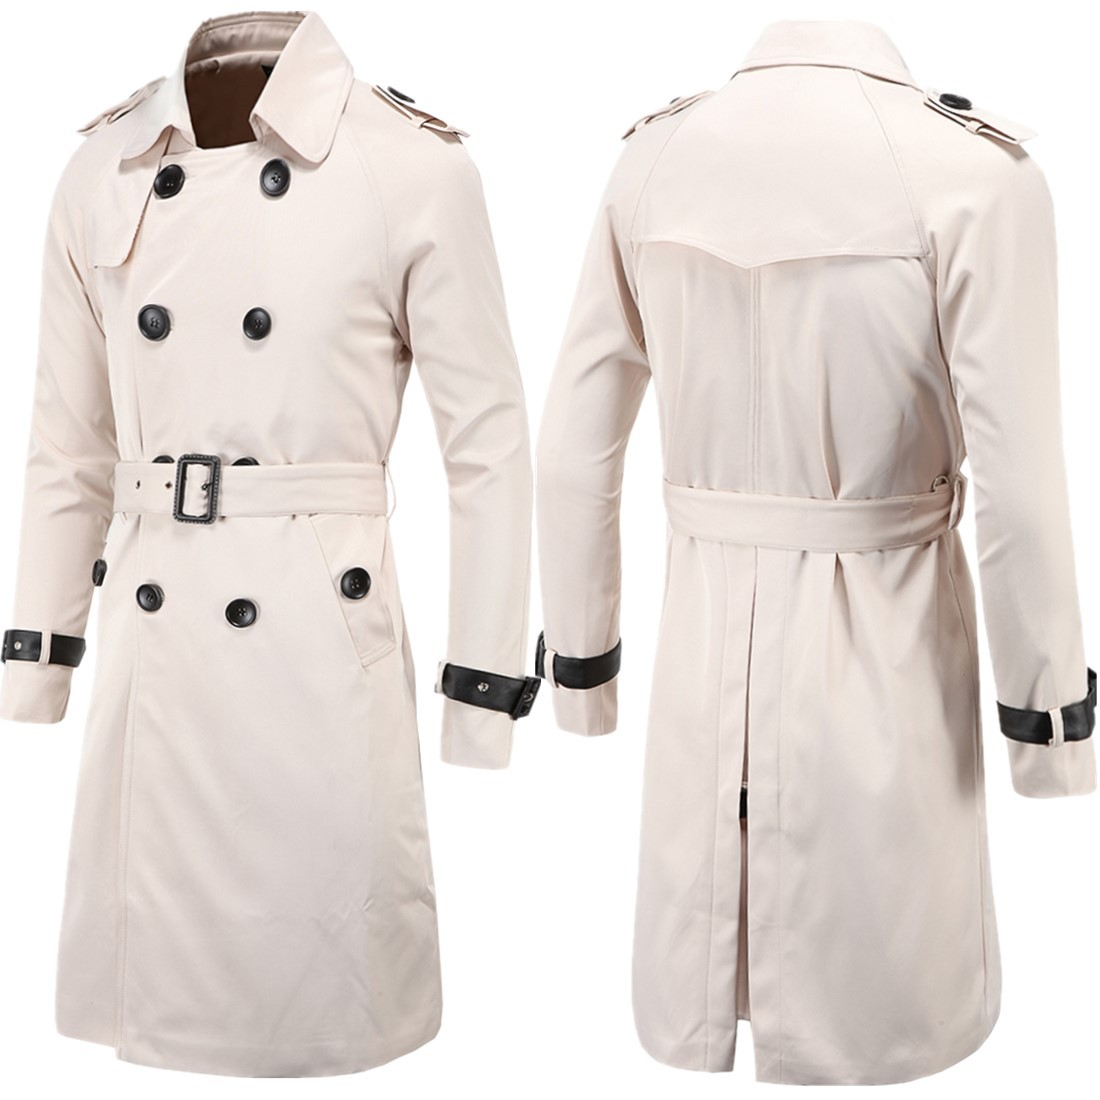 Aowofs Fashion Men'S Wear Spring Clothing Boutique Europe And America Long Slim Fit Double Breasted Trench Coat MEN'S Coat